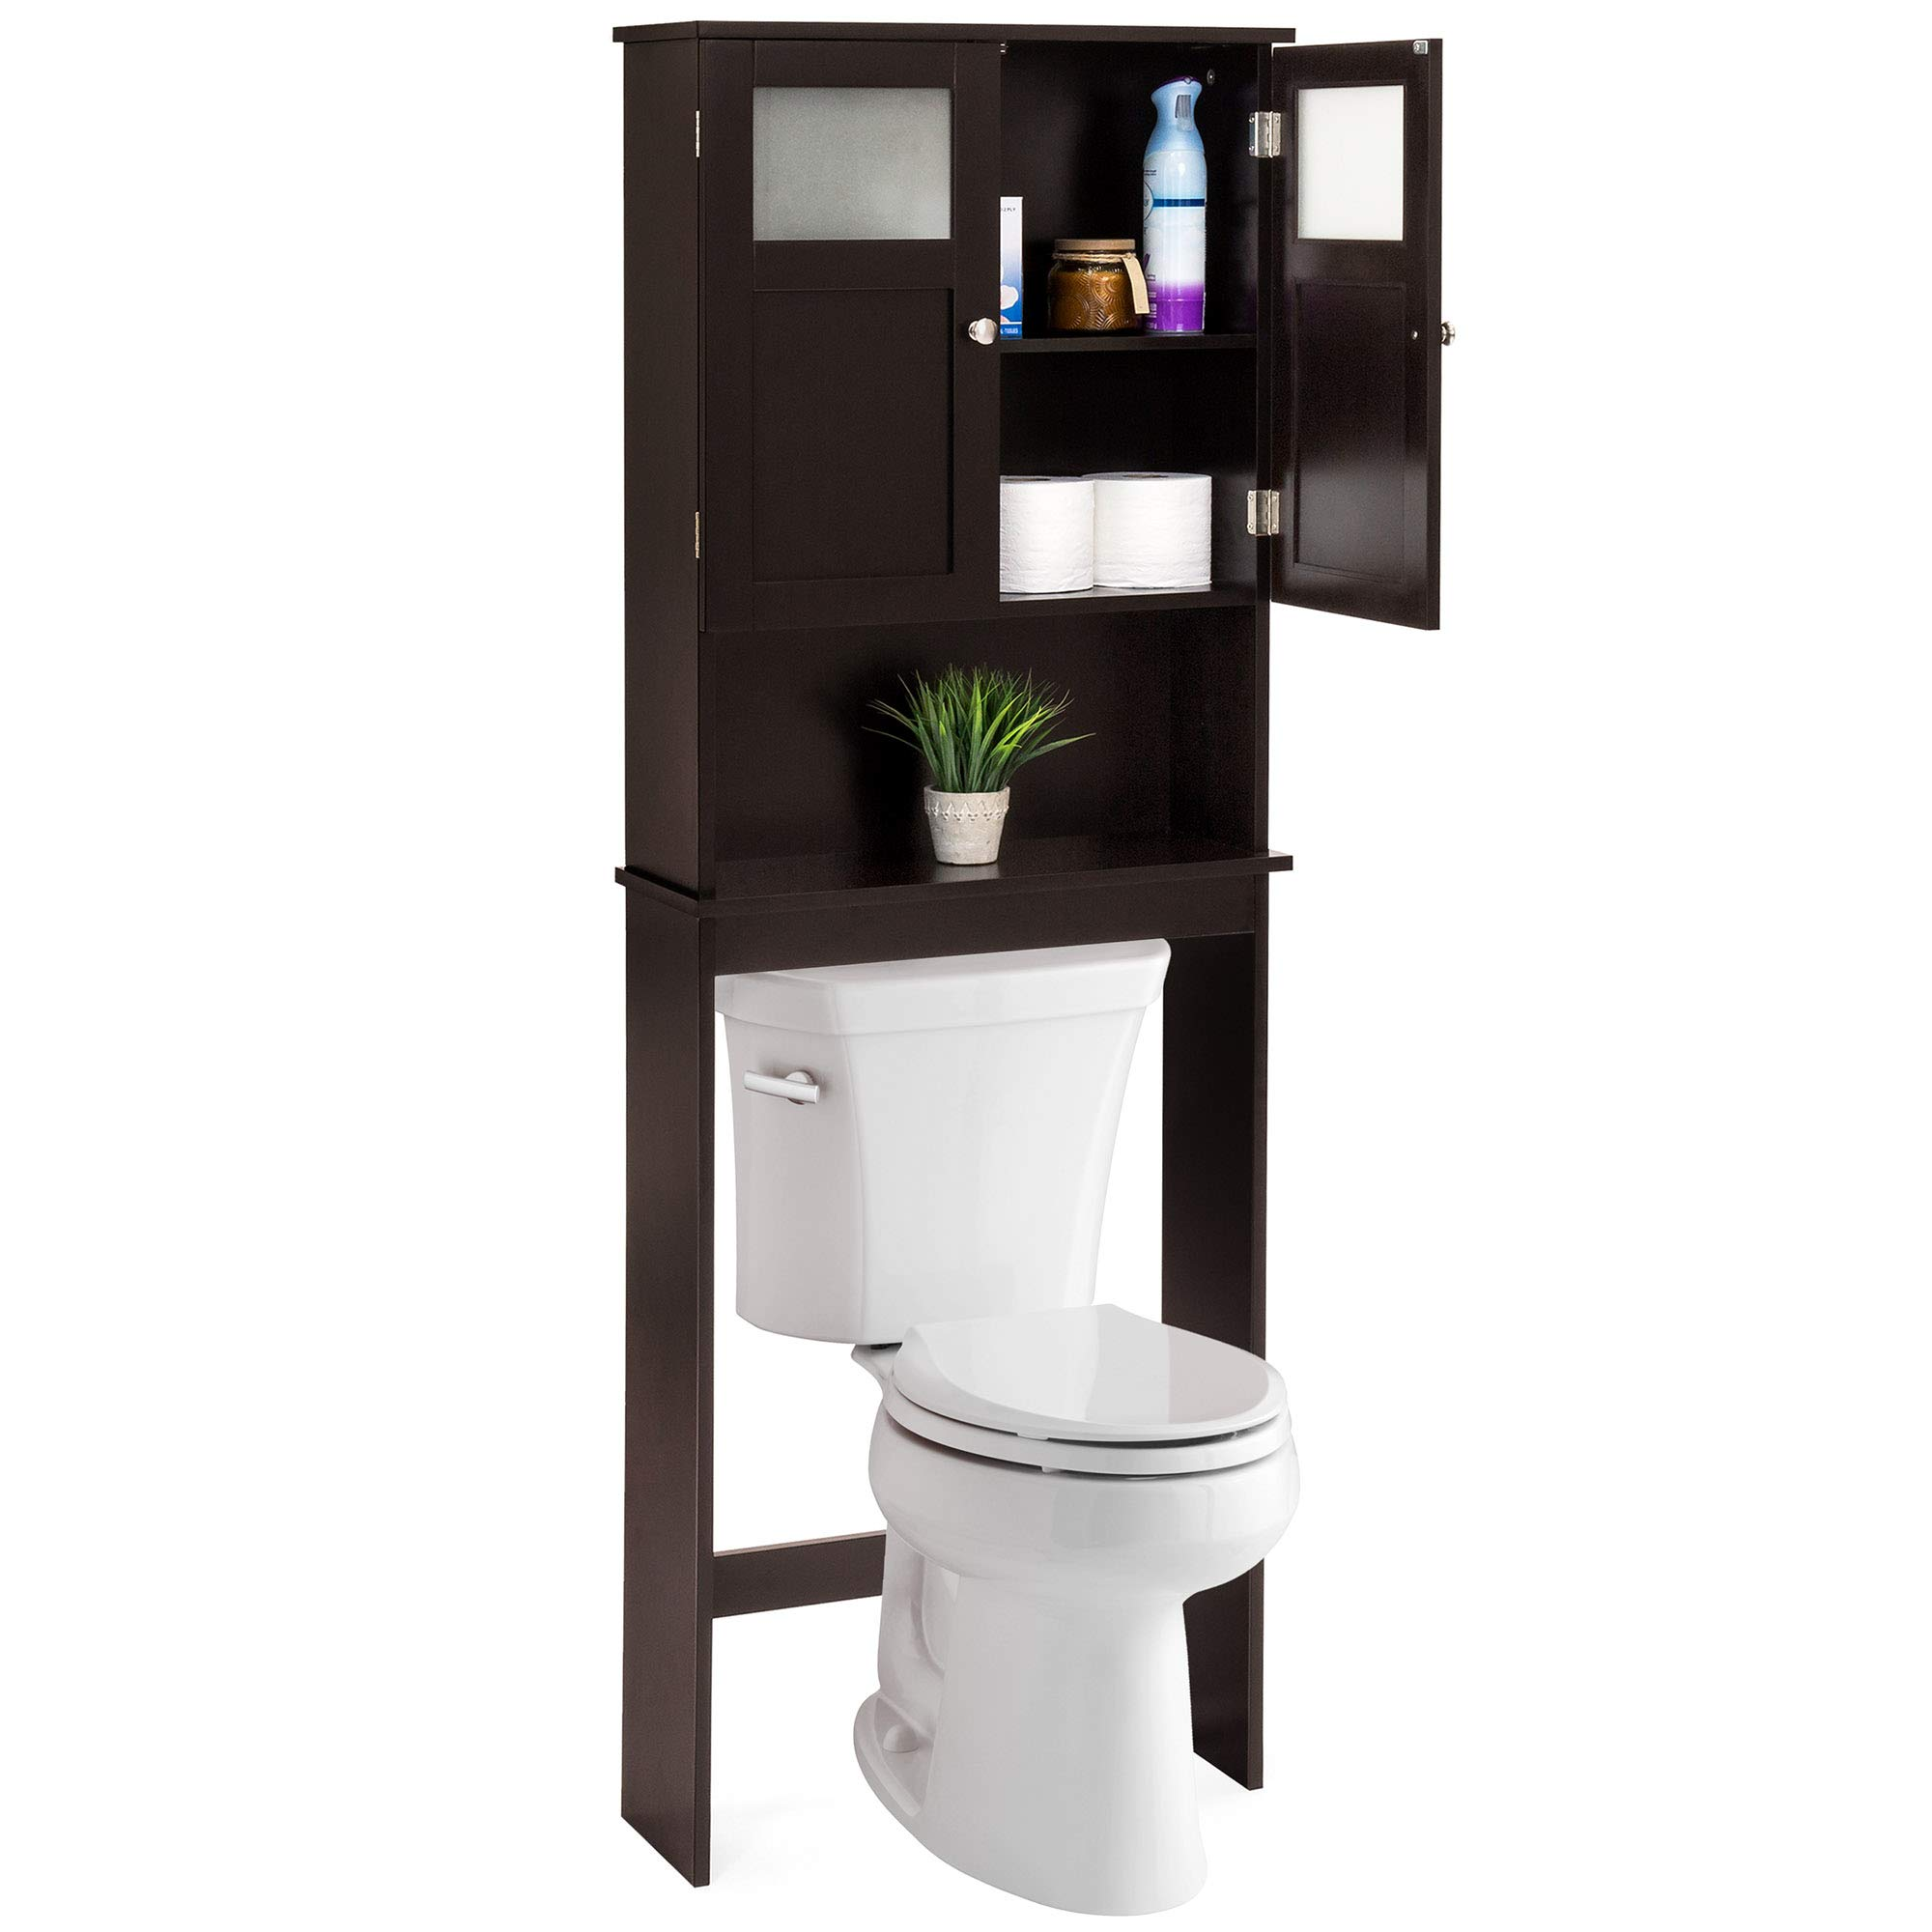 Best Choice Products Wooden Over-The-Toilet Space Saving Cabinet Shelf Tower Rack for Linens, Toiletry, Espresso by Best Choice Products